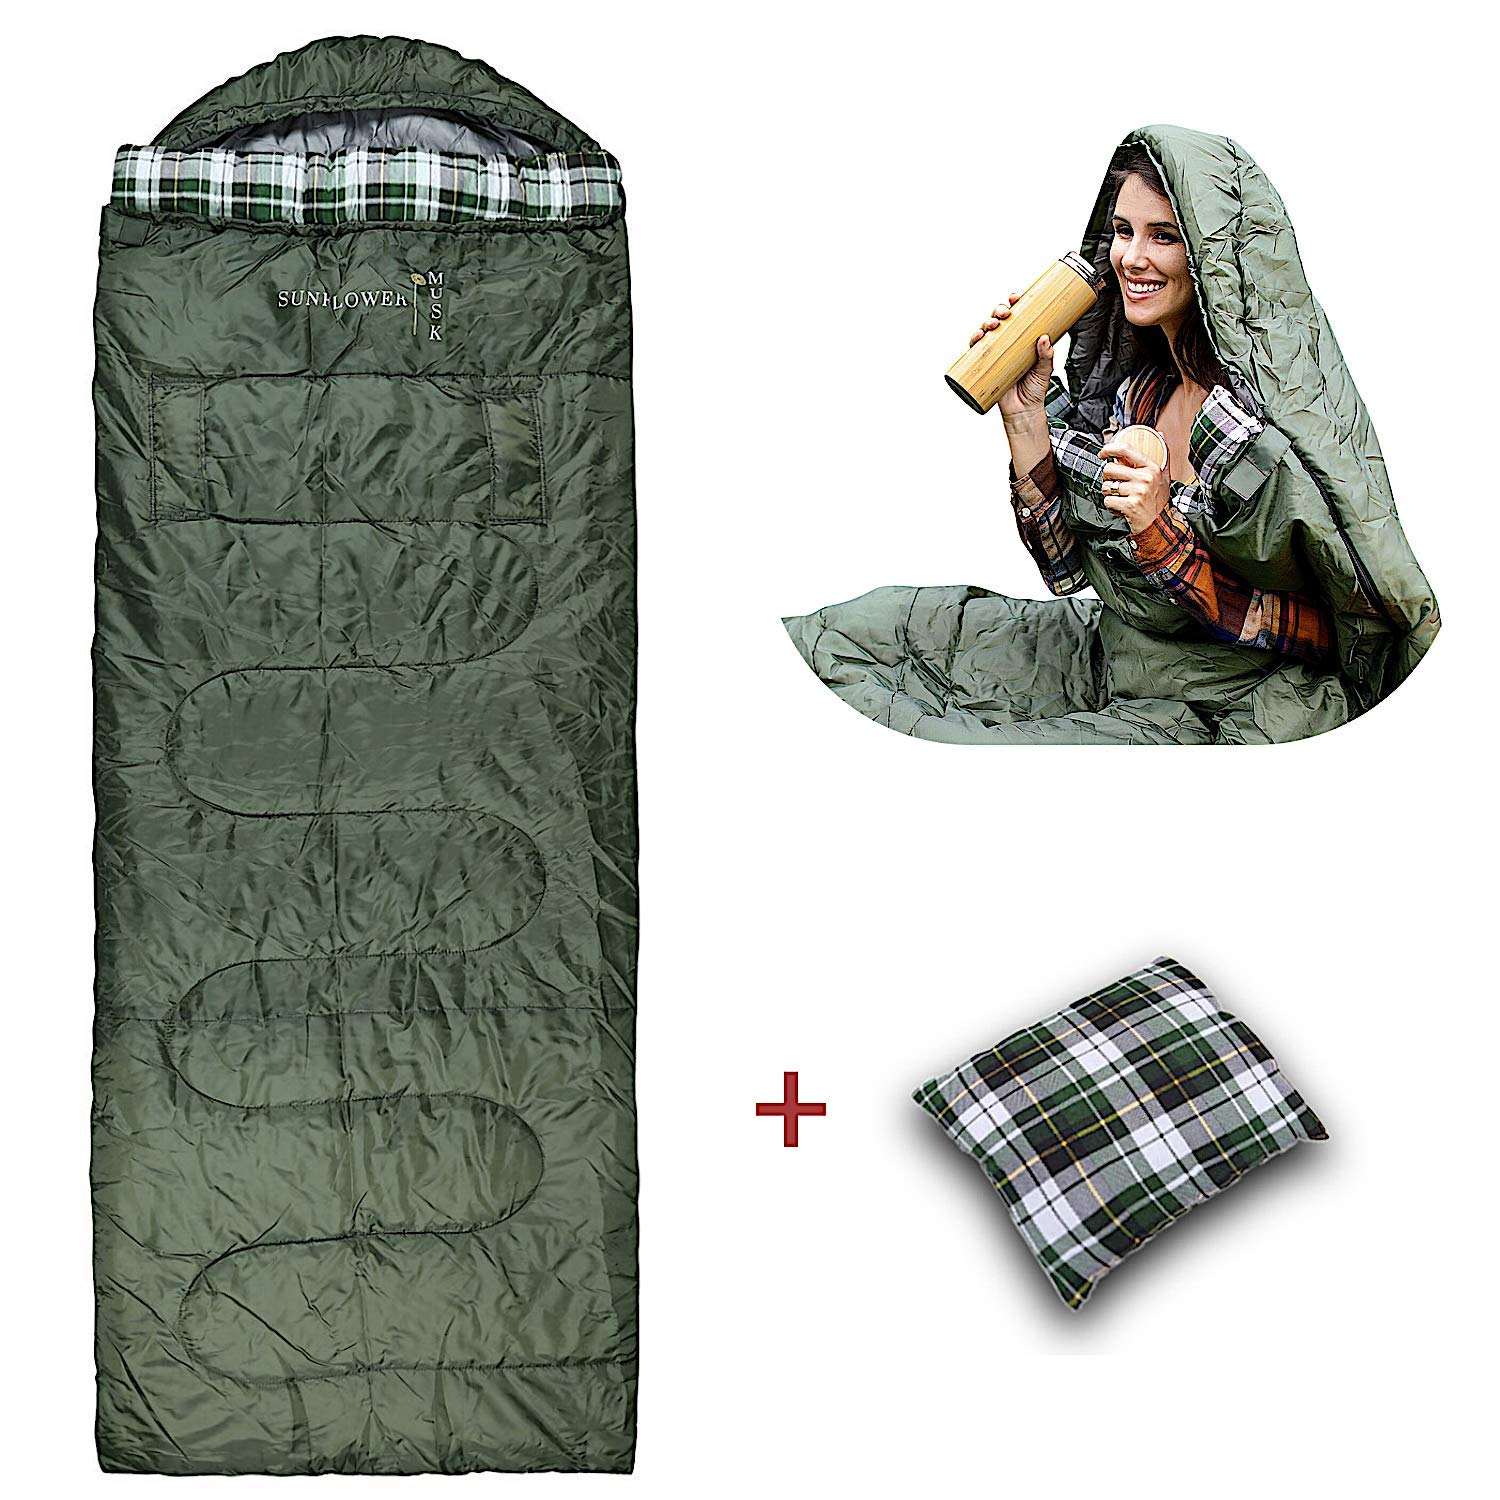 Sunflower Musk Wearable 4 Season Sleeping Bag Arm Openings and Feet Extensions Great for Camping, Outdoor, Sleepover, Hiking Wide and Lightweight Premium Acrylic Fiber Filling Adult